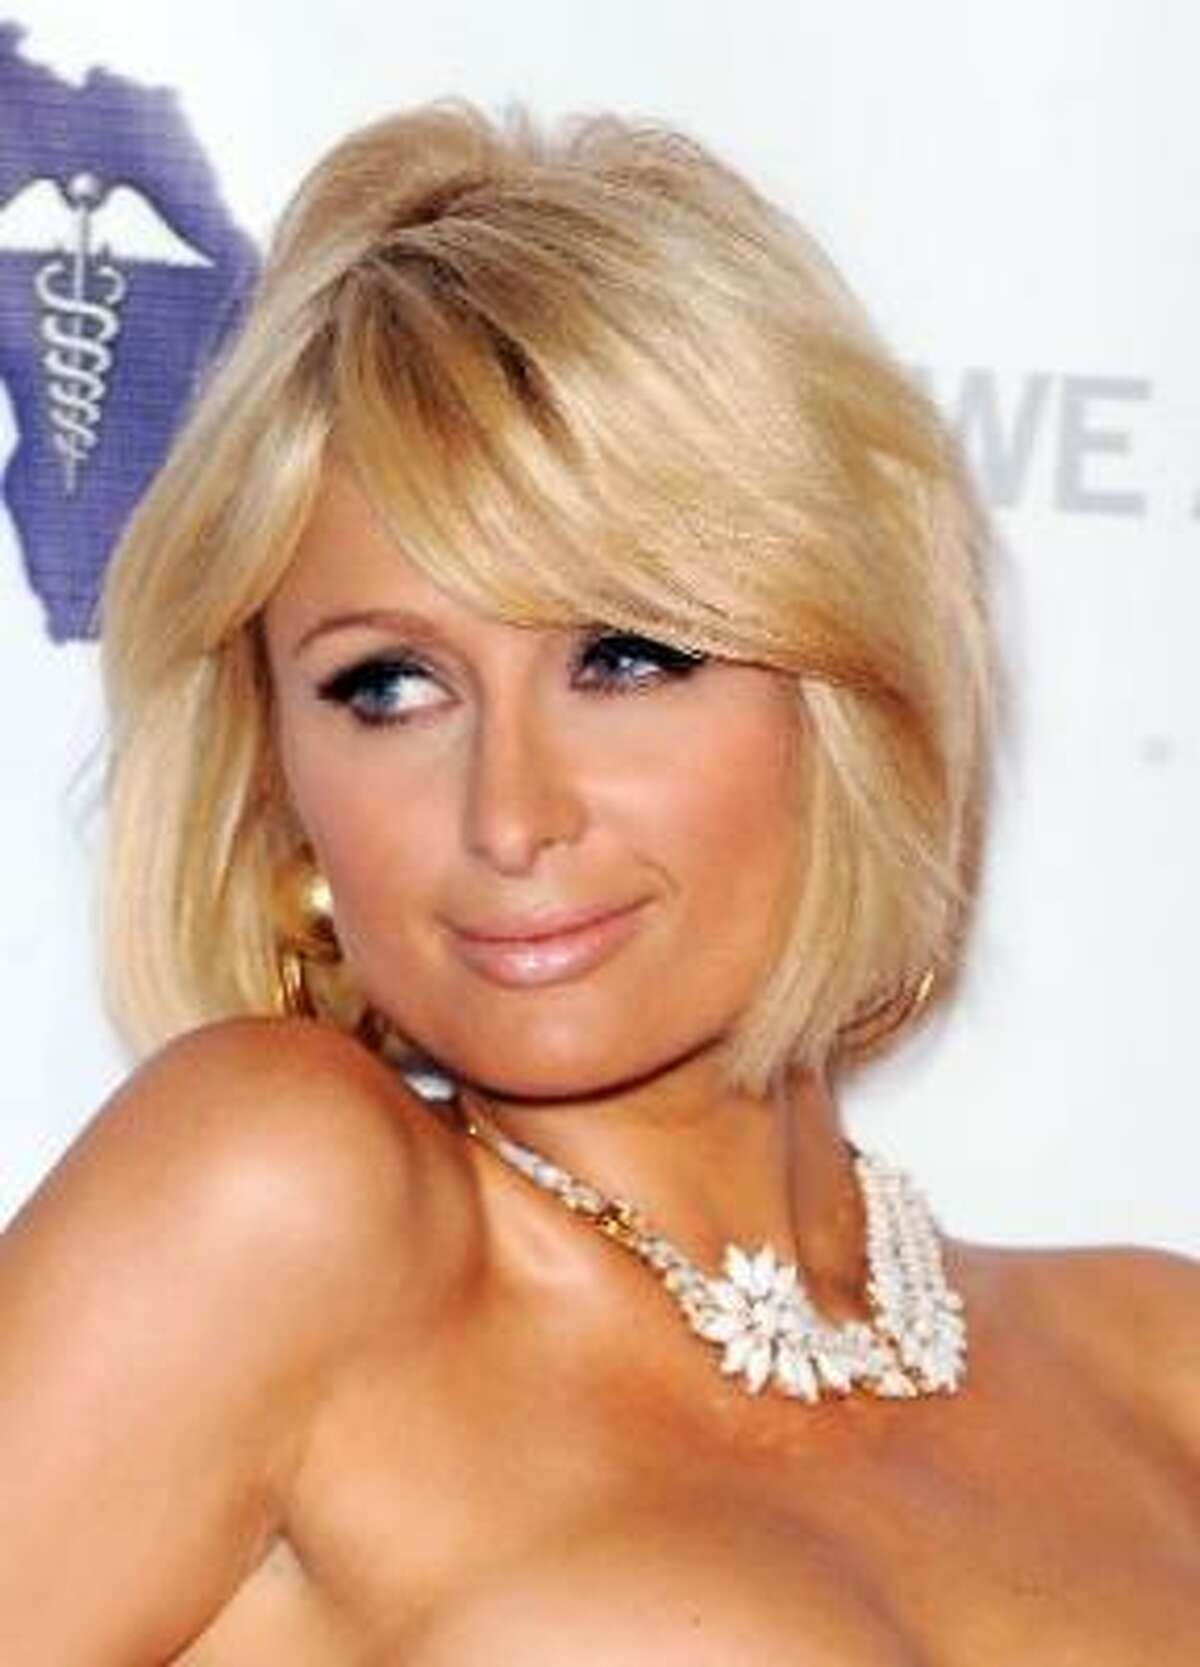 Paris Hilton wants to know ... what's Wal-Mart?: The funny thing isn't that Hilton wondered aloud if the megachain